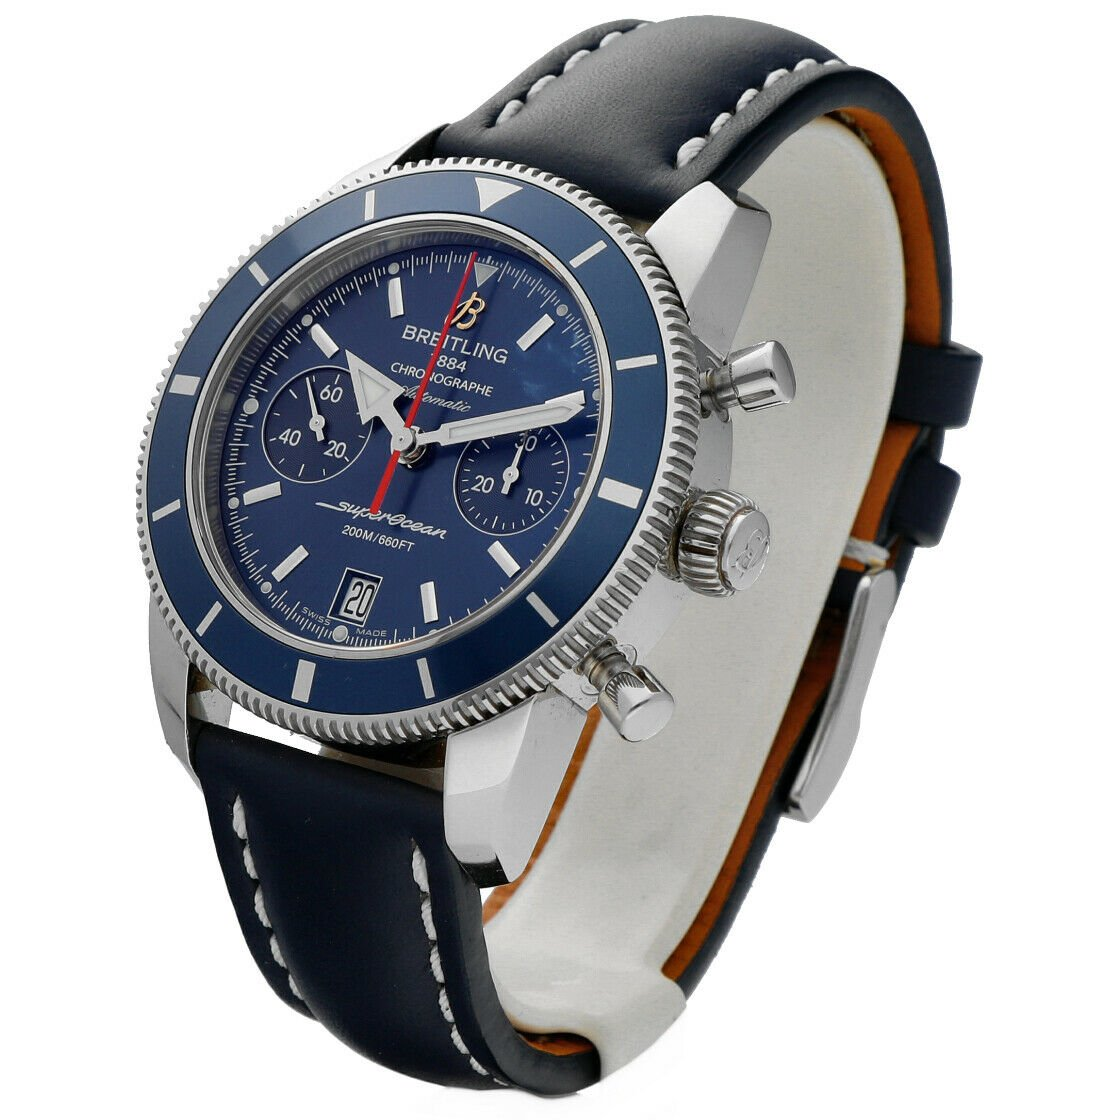 Breitling A23370 Superocean Heritage Blue Dial Chrono Leather Auto Mens Watch 124132399908 2